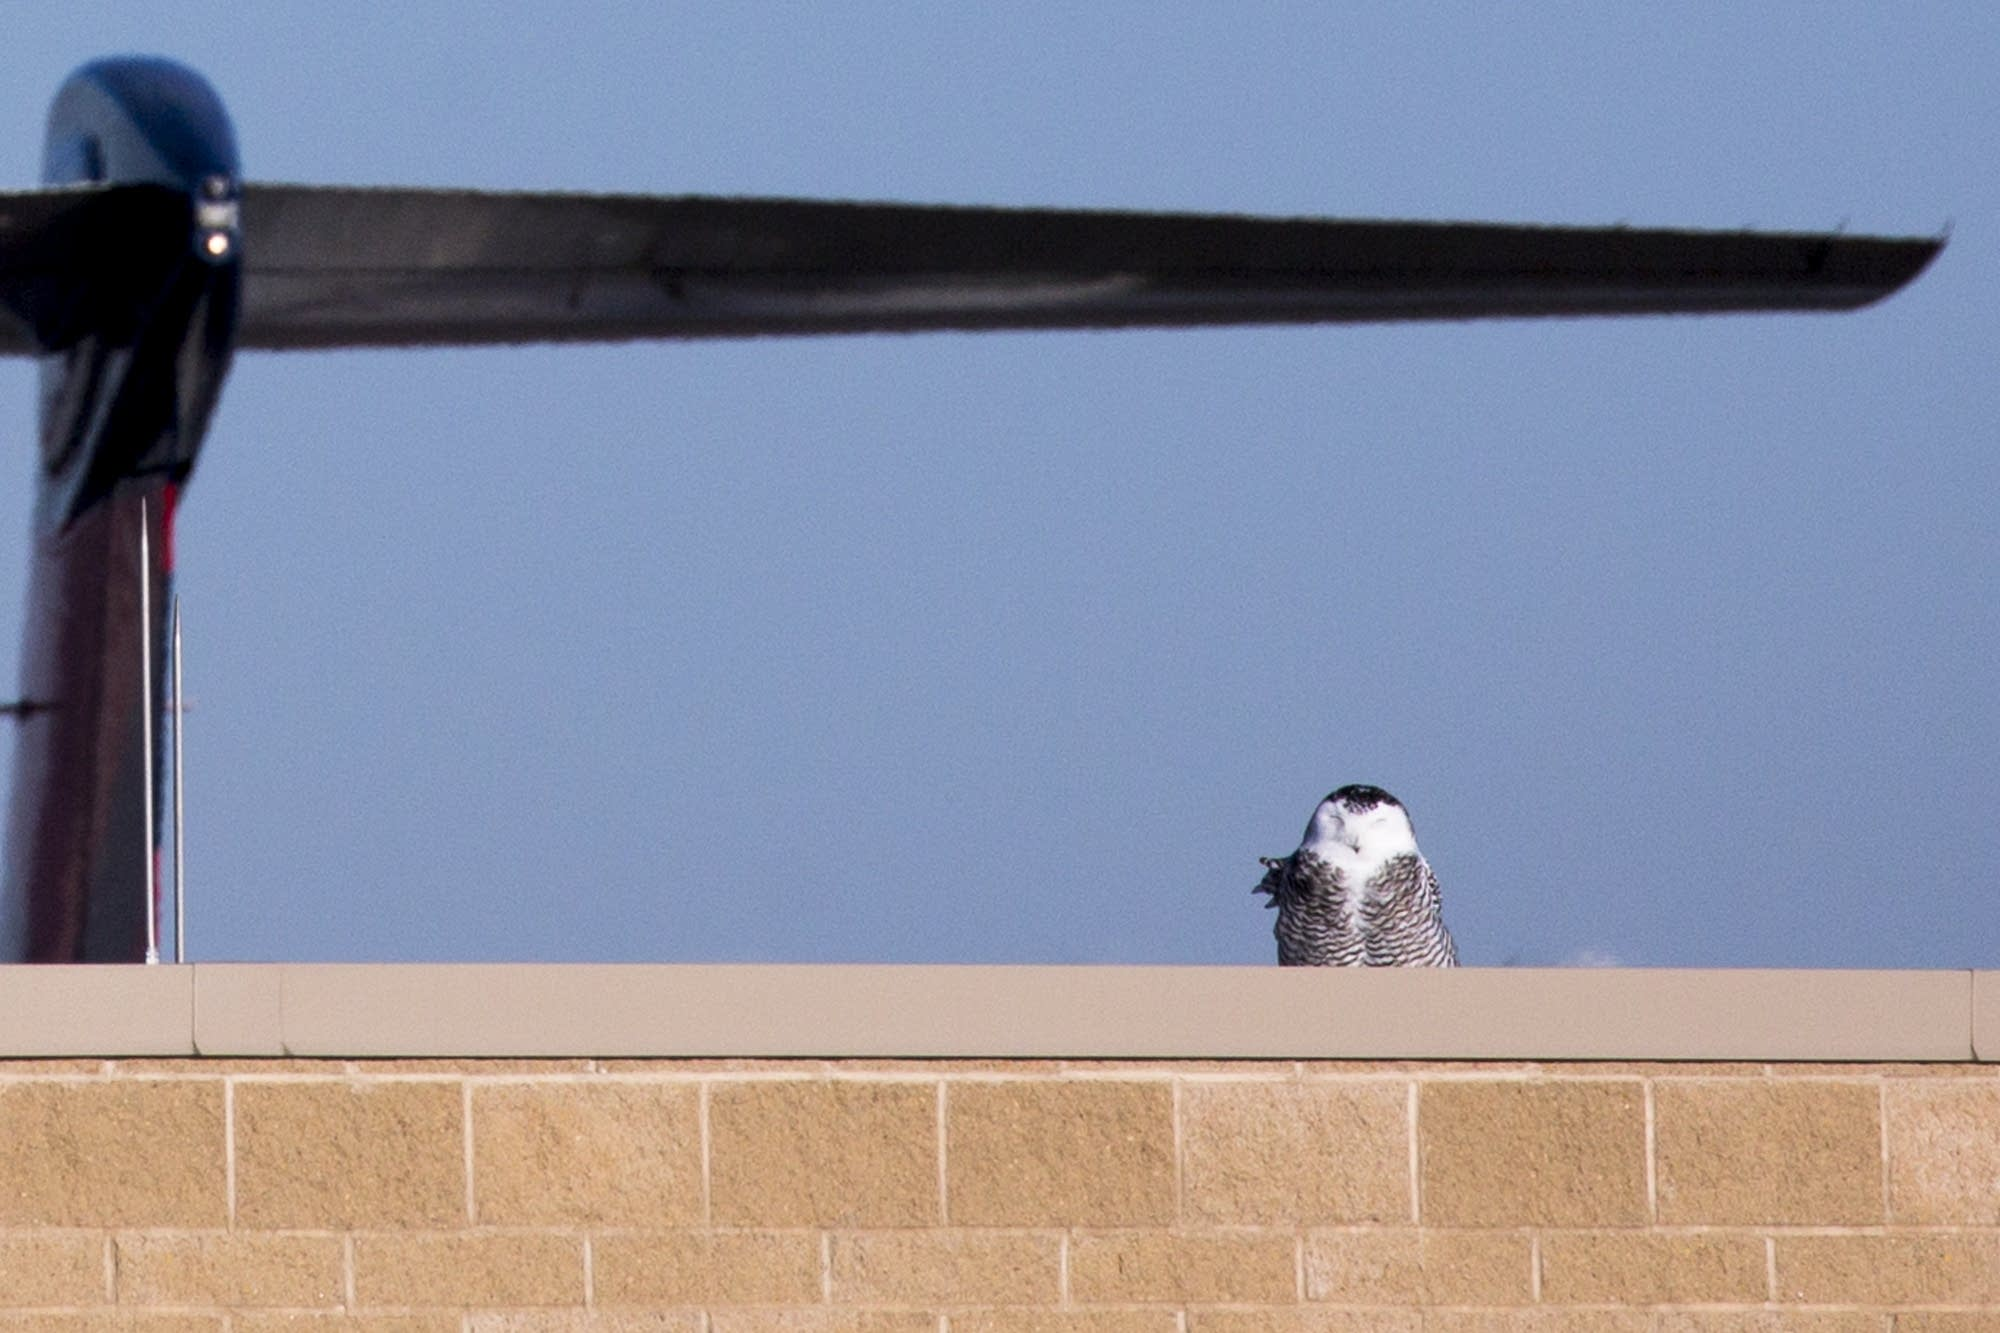 An immature female snowy owl perches on a building